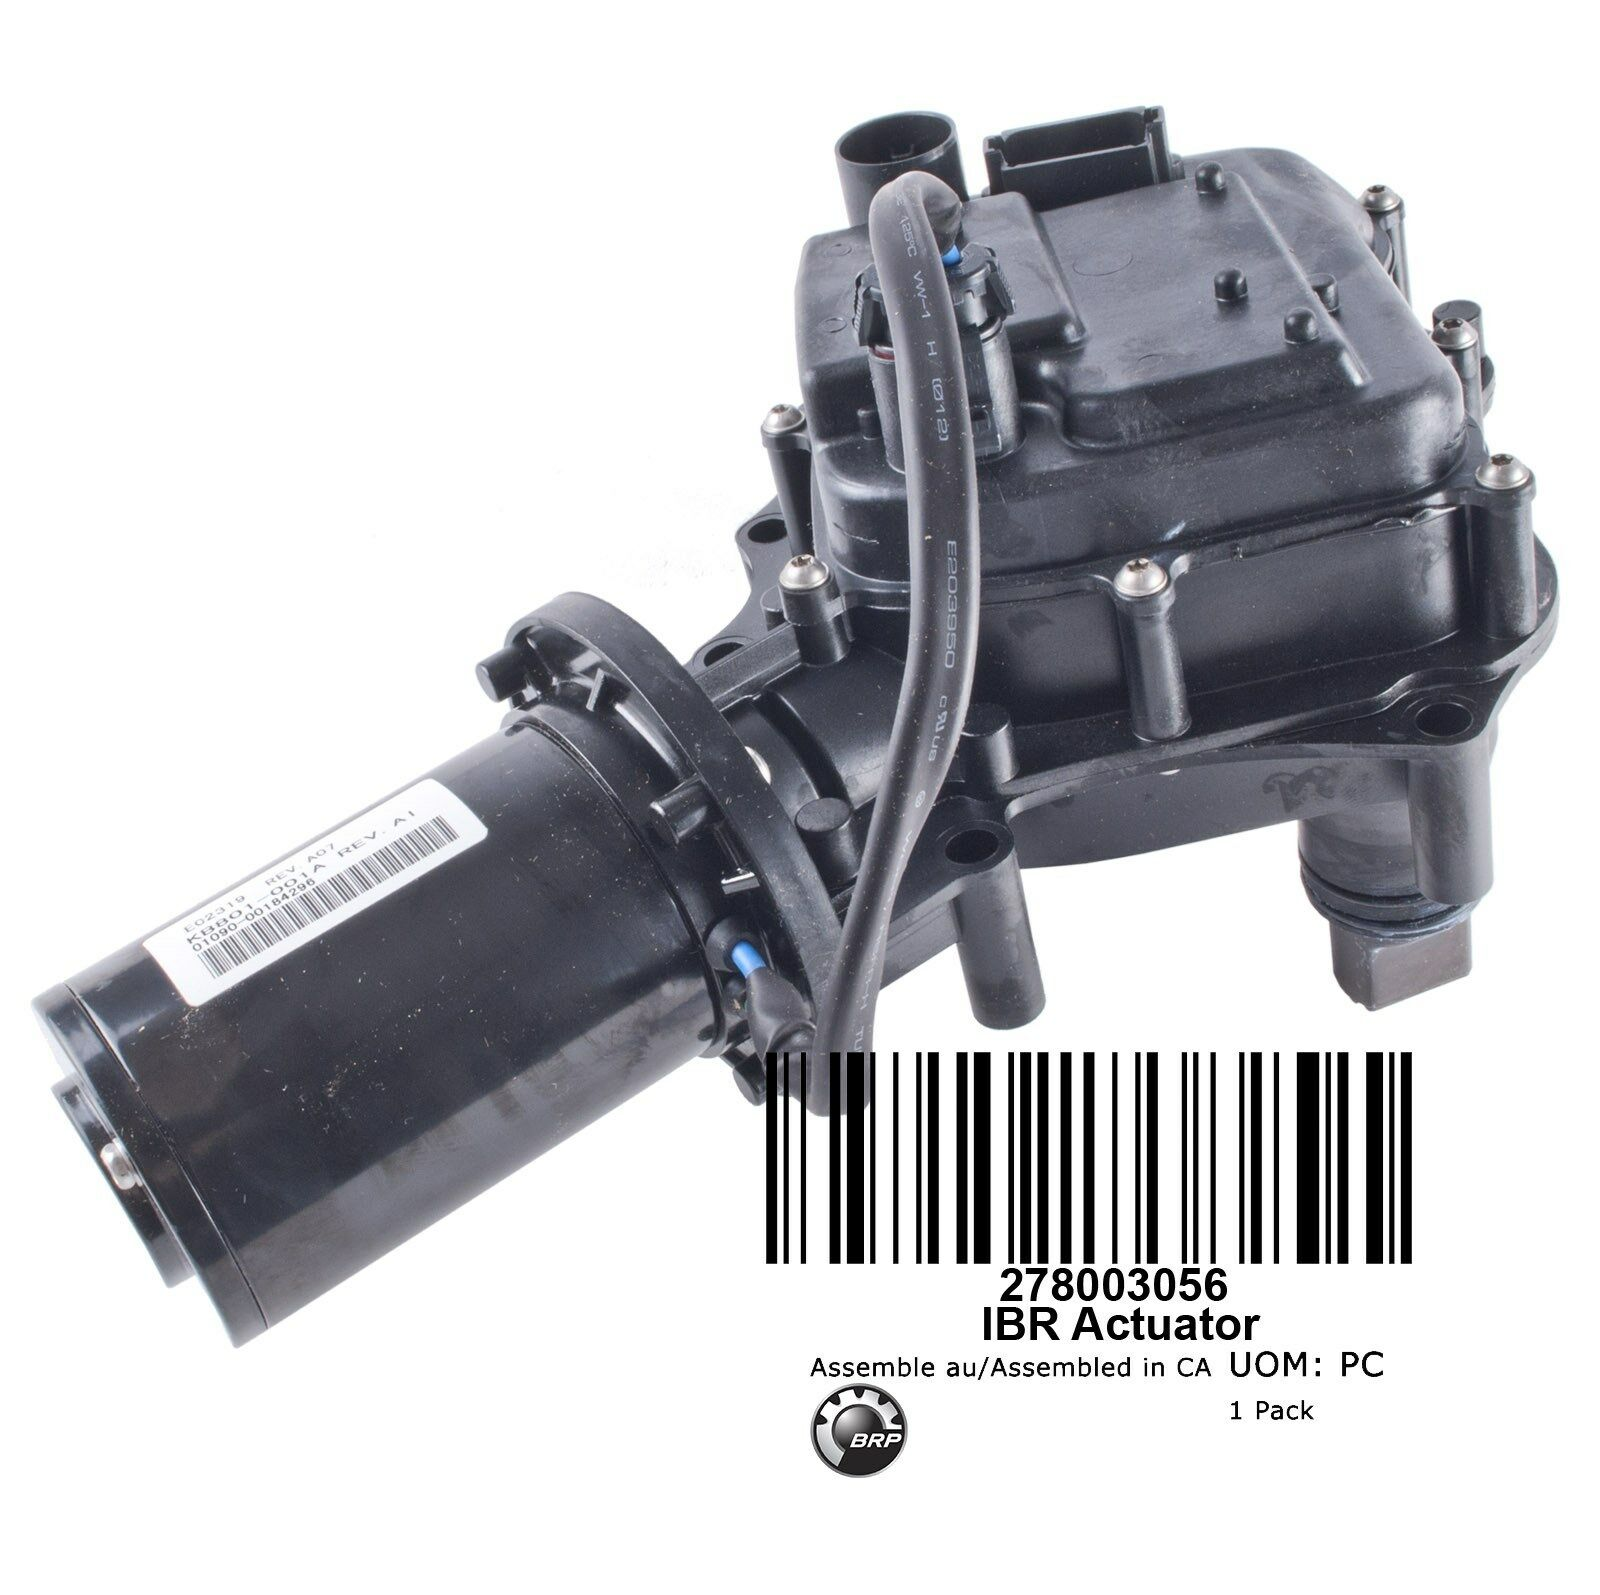 Details about Seadoo OEM ACTUATEUR IBR 278003056